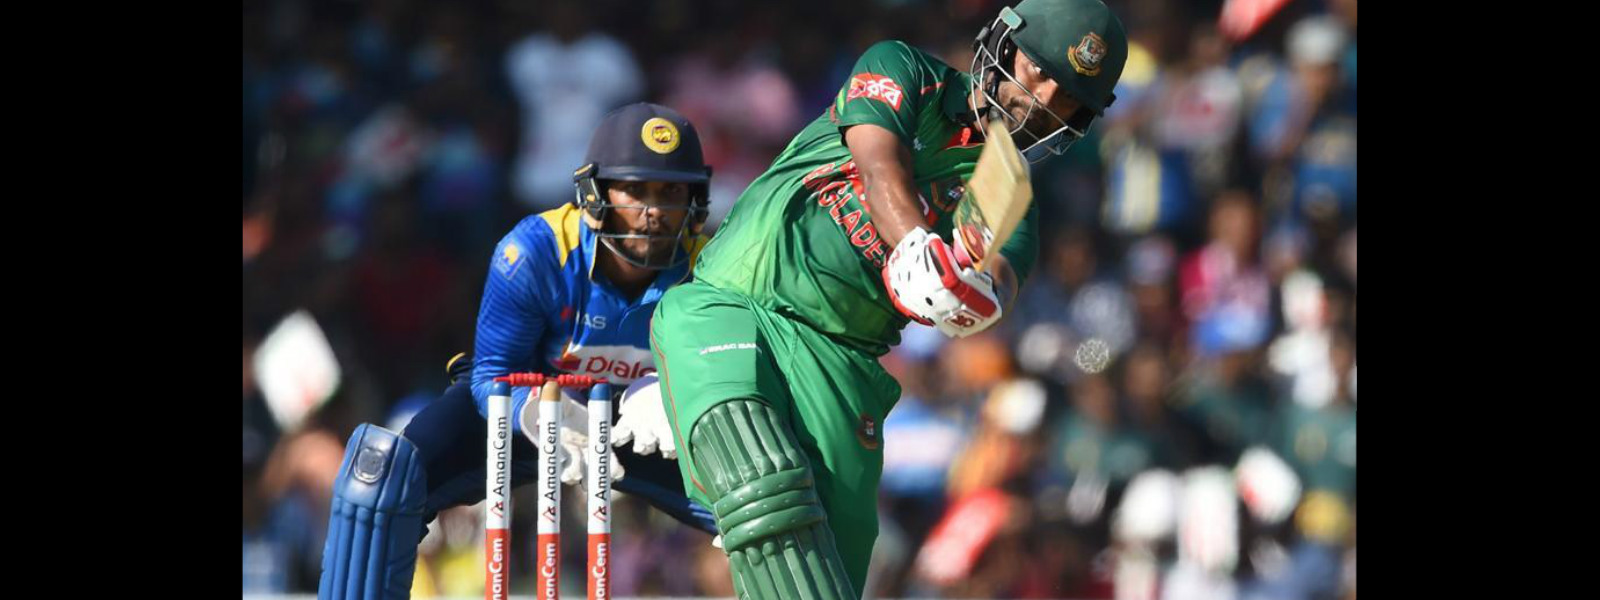 Nidahas Trophy: Bangladesh beats Sri Lanka to enter finals